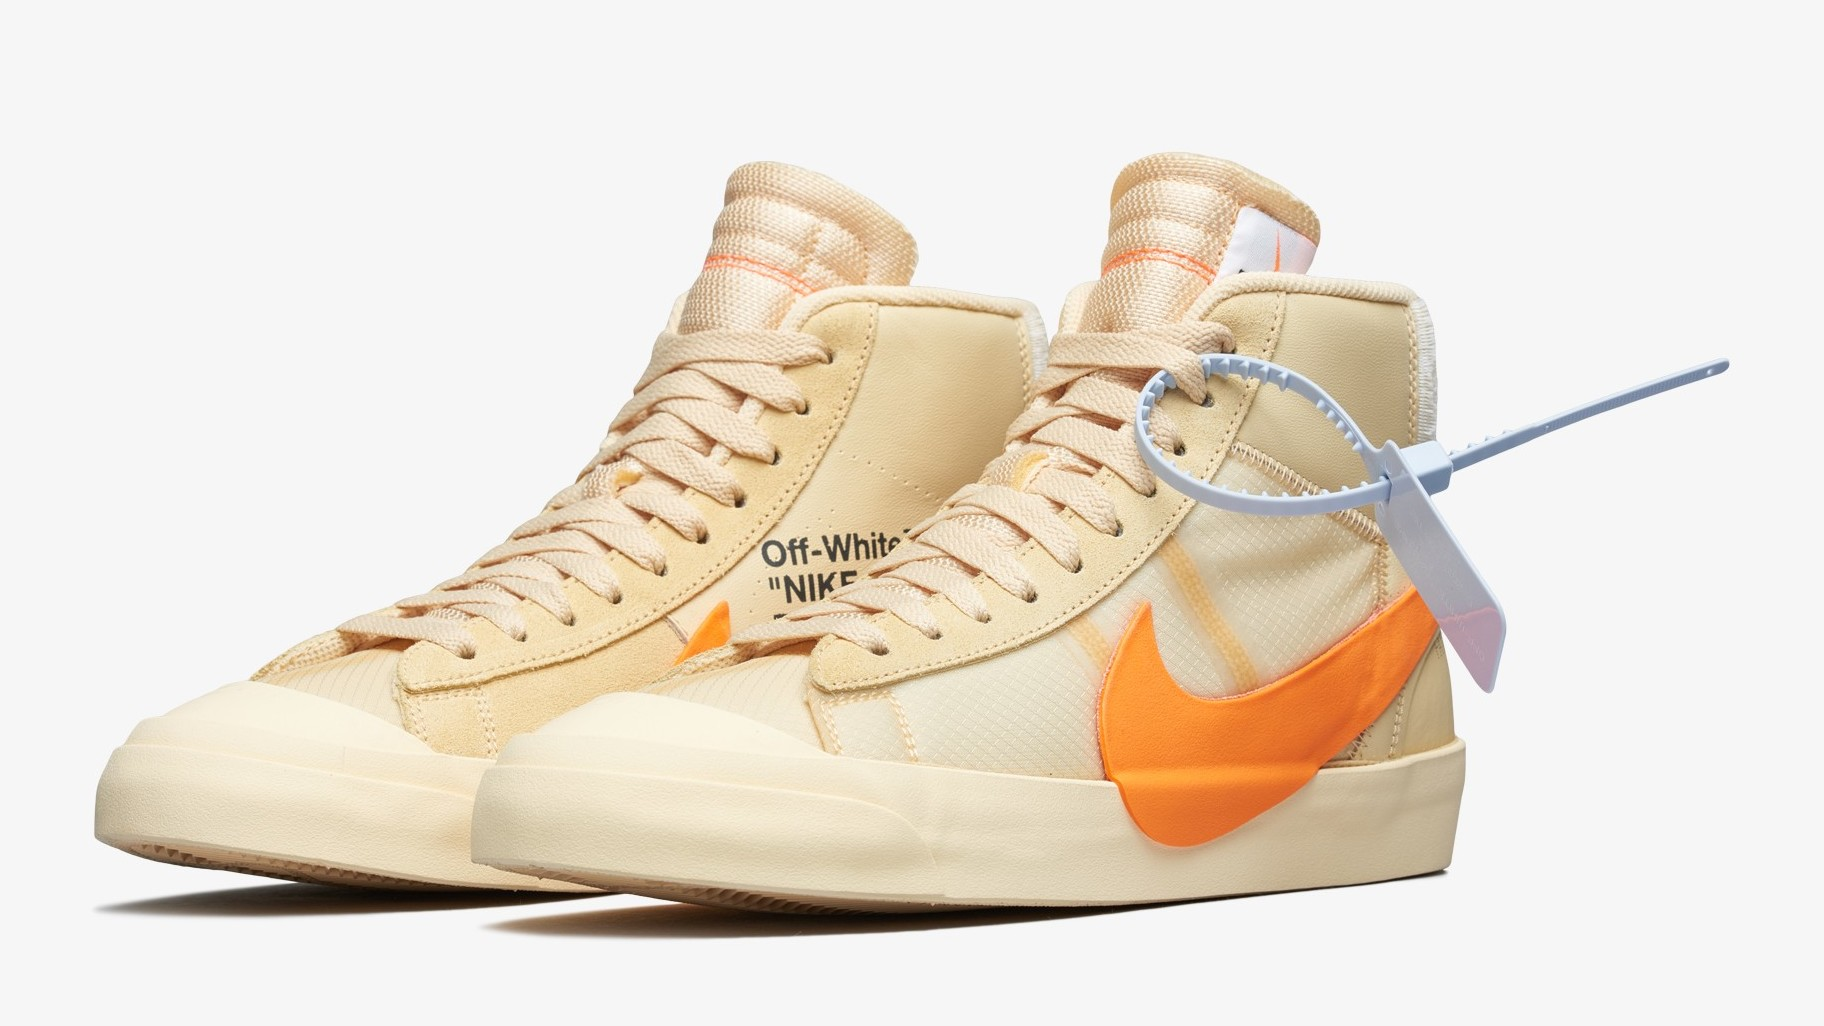 pretty nice f1729 64b90 Virgil Abloh s New Off-White x Blazers Drop Tomorrow. Halloween-themed ...